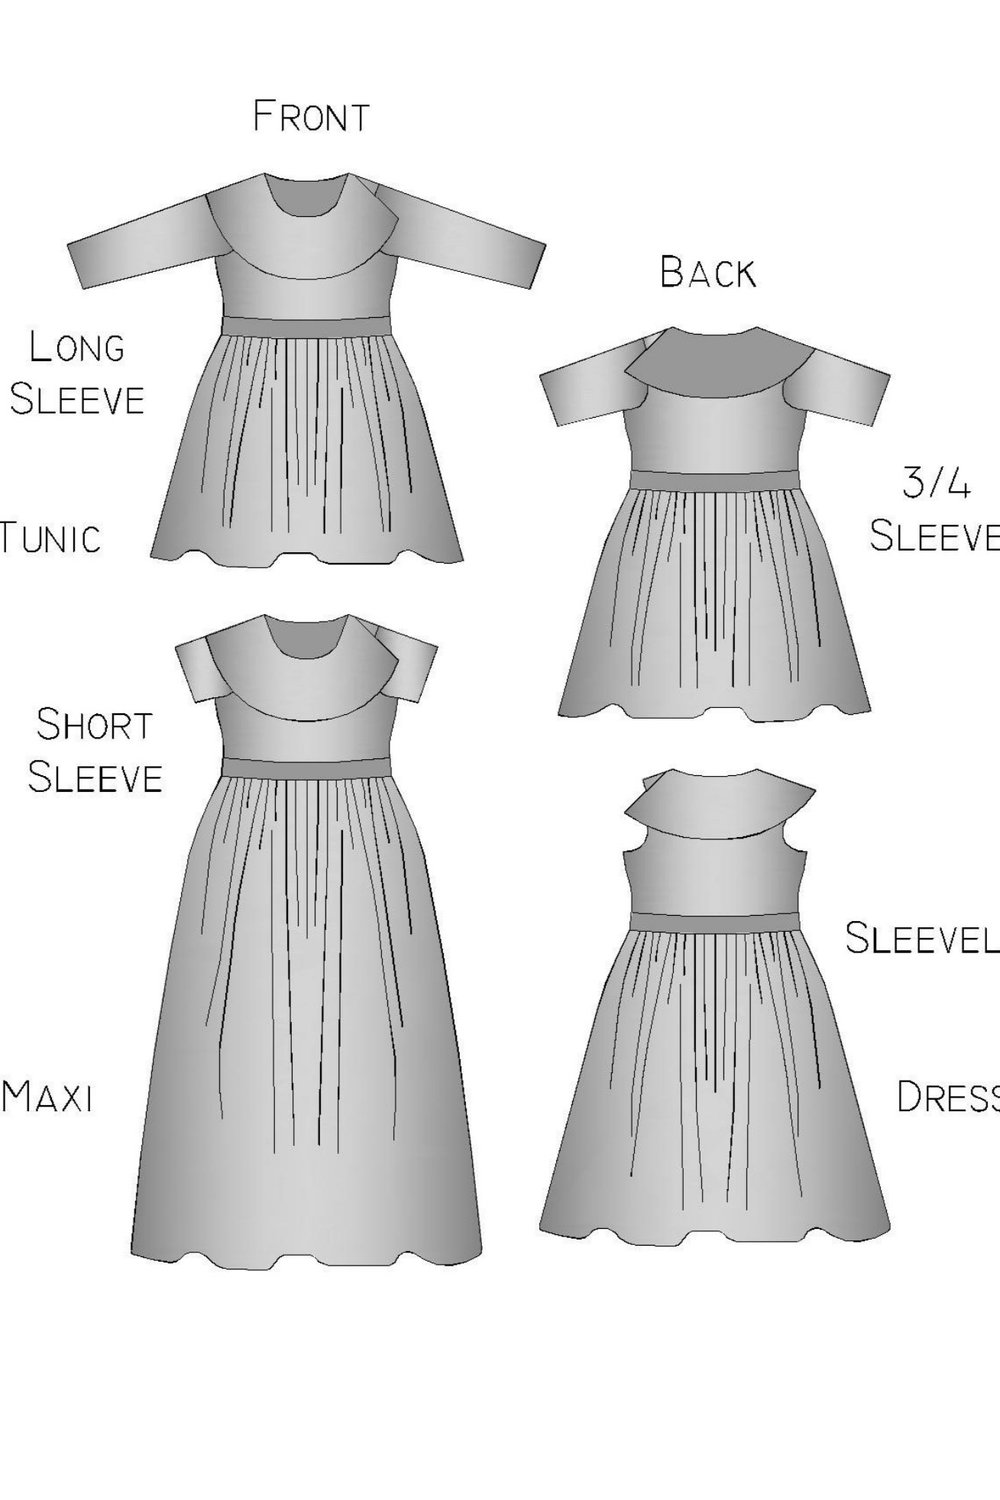 Clover Dress PDF sewing pattern from George + Ginger